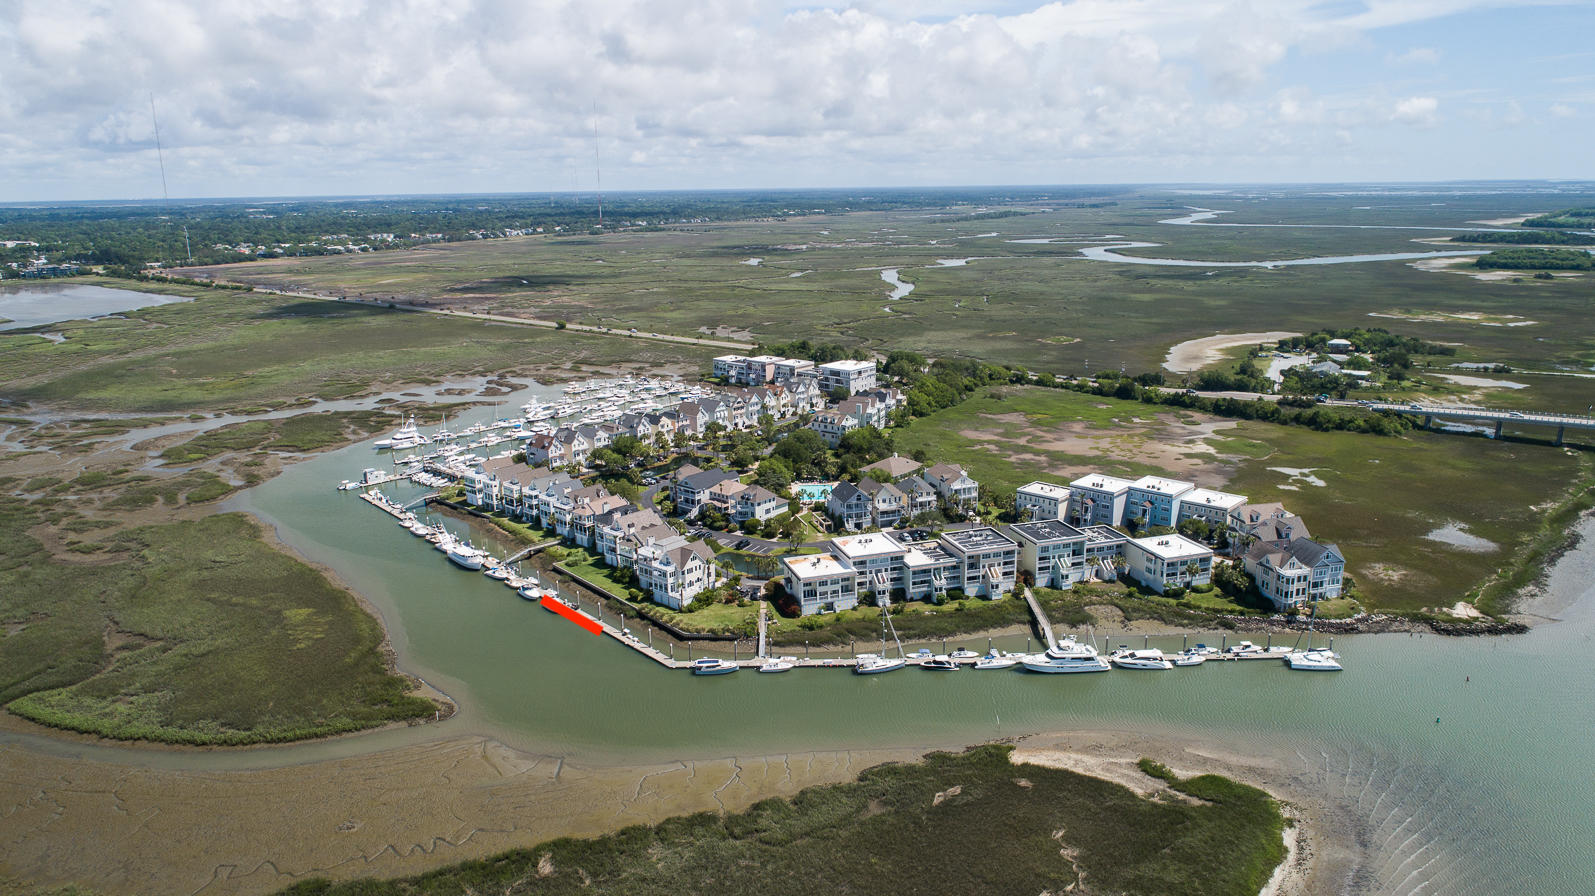 Tolers Cove Homes For Sale - B-4 & B-5 Tolers Cove Marina 70ft + Home, Mount Pleasant, SC - 53